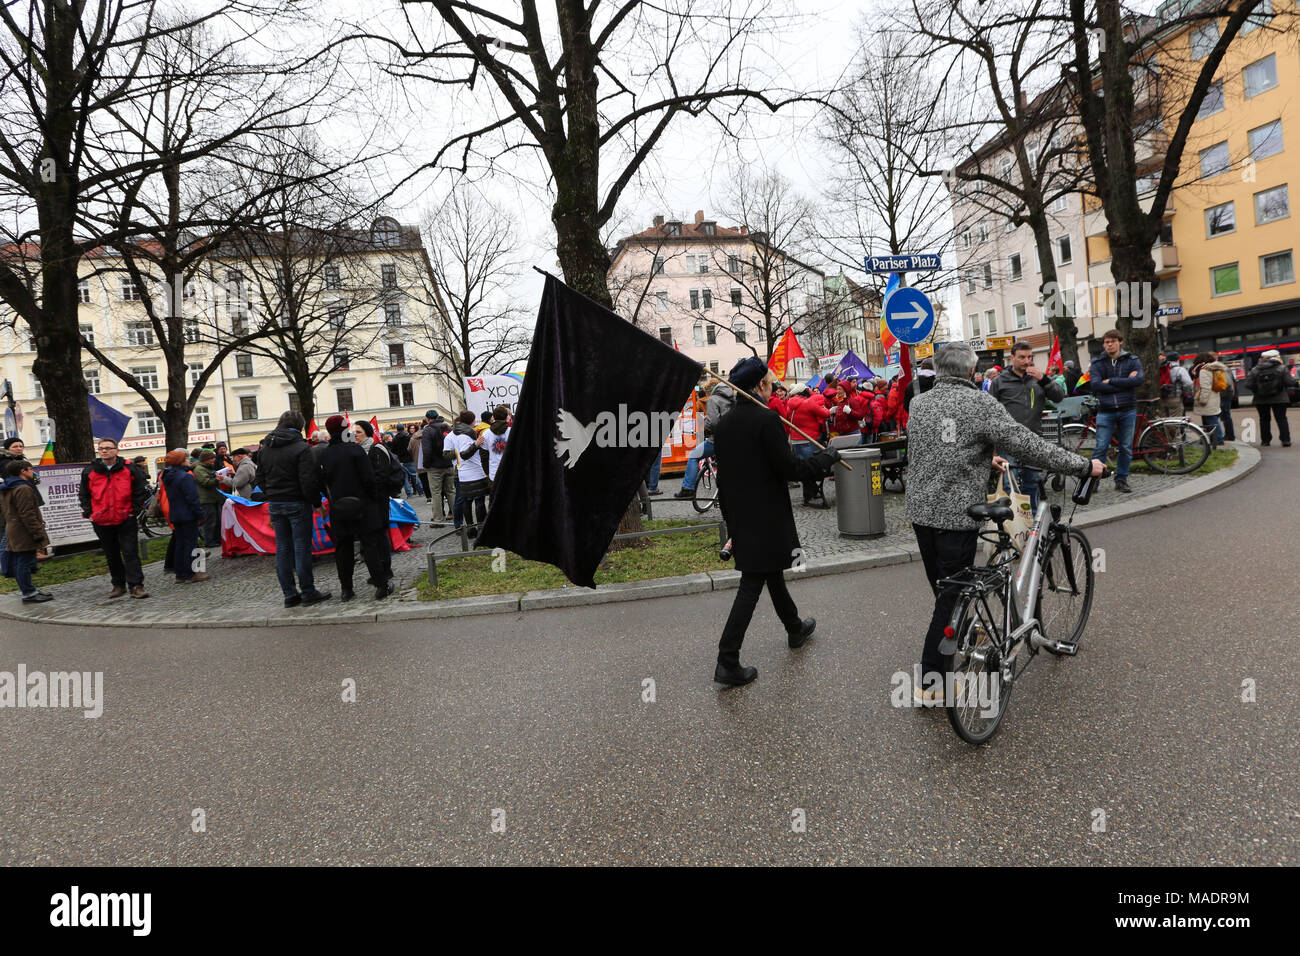 Munich, Germany. 31st Mar, 2018. A man wearing black clothes with a black flag with a white pigeon. Some thousand joined the Ostermarsch (easter march) for peace and disarmament. The Ostermarsch is a traditional peace demonstration, which is held yearly in hundreds of German towns. Credit: Alexander Pohl/Pacific Press/Alamy Live News Credit: PACIFIC PRESS/Alamy Live News - Stock Image